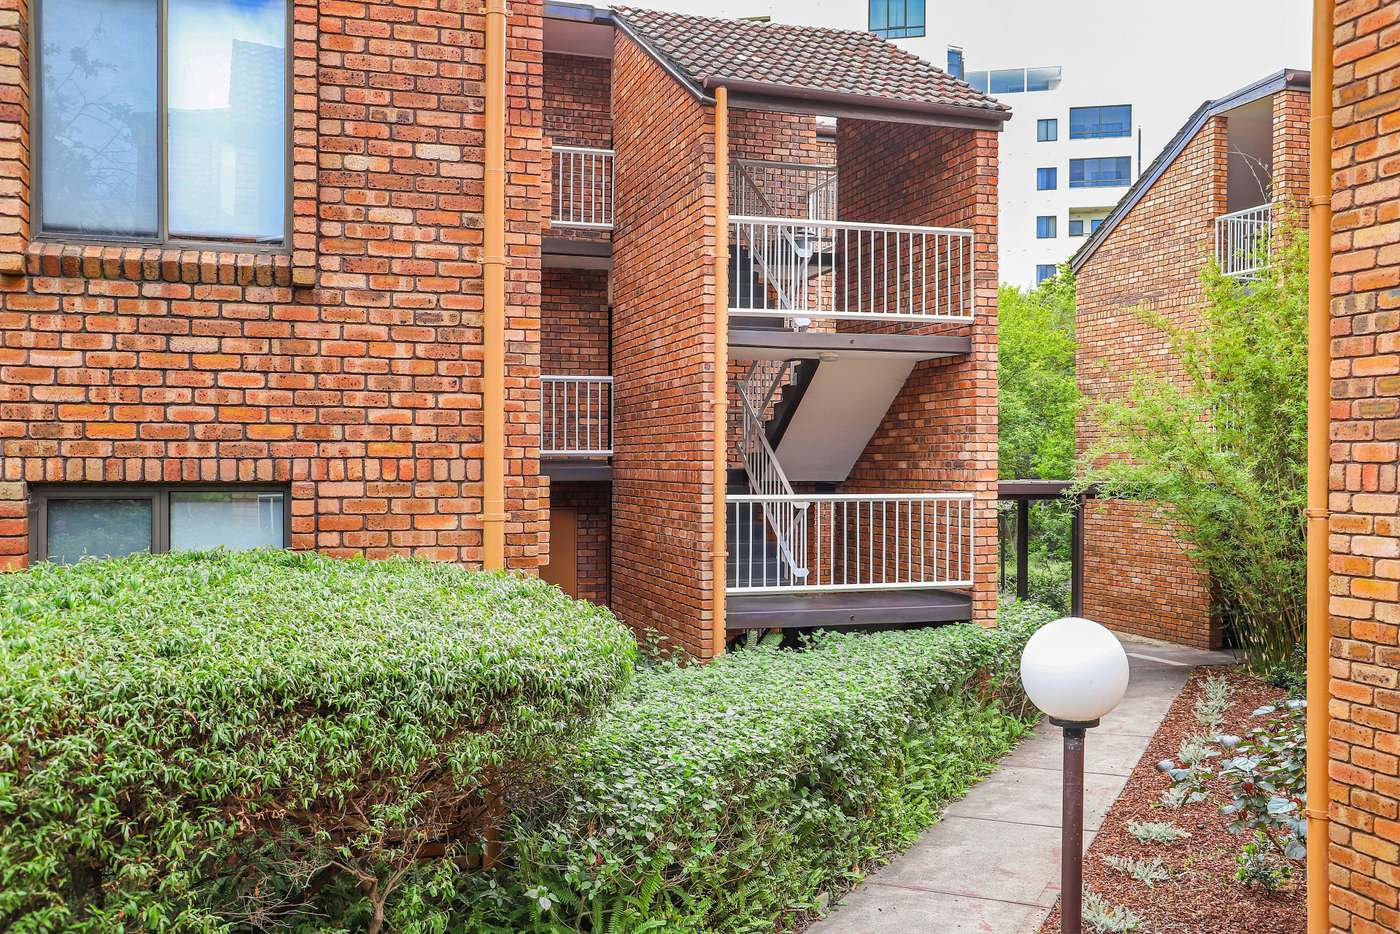 Main view of Homely house listing, 18/5 Melville Place, South Perth WA 6151